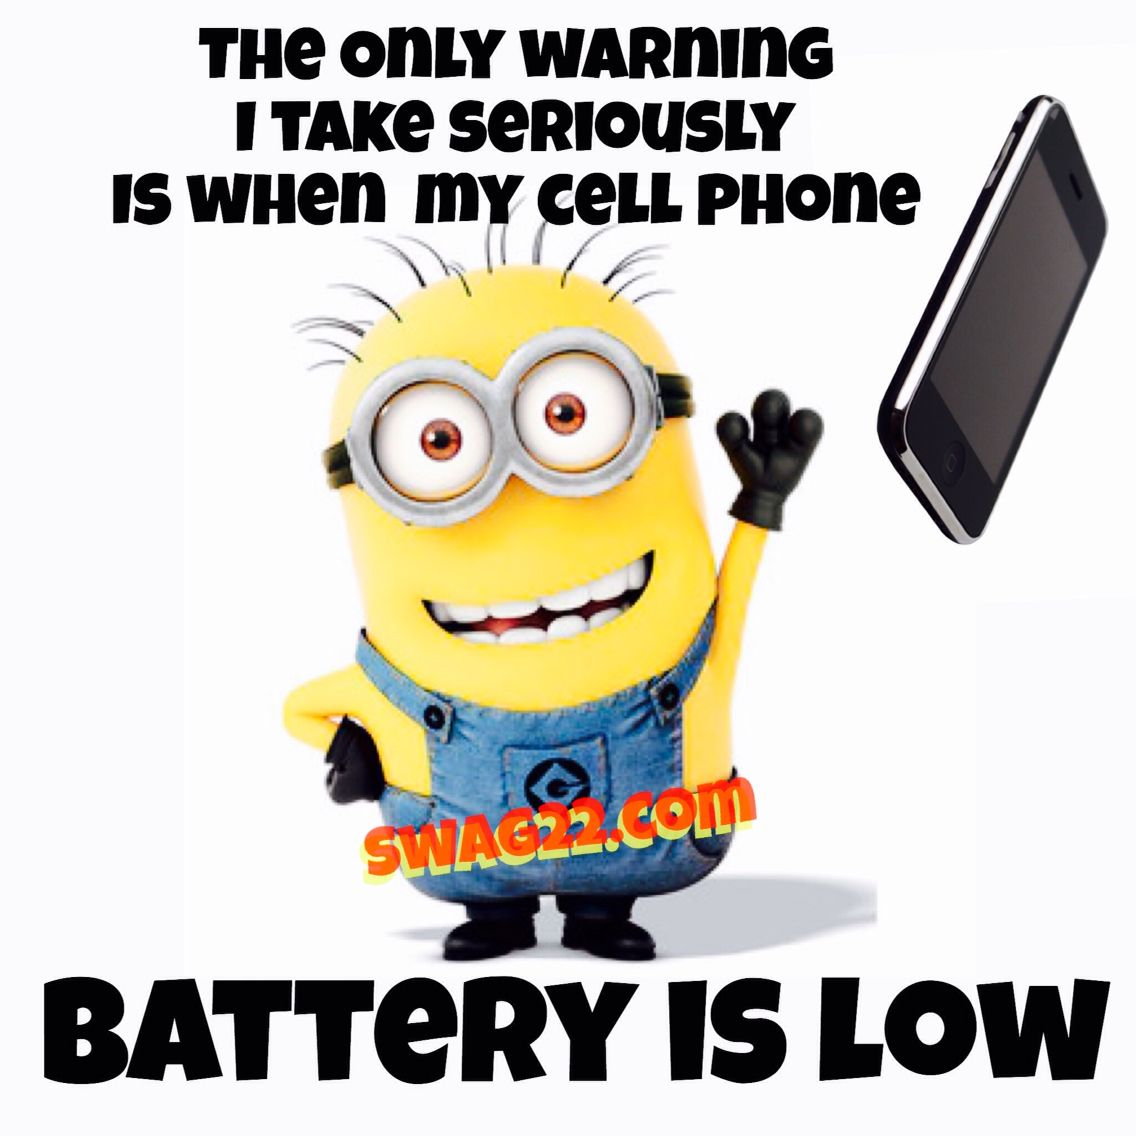 Funny Minion Picture Quotes About Cell Phones And Warnings Lol.